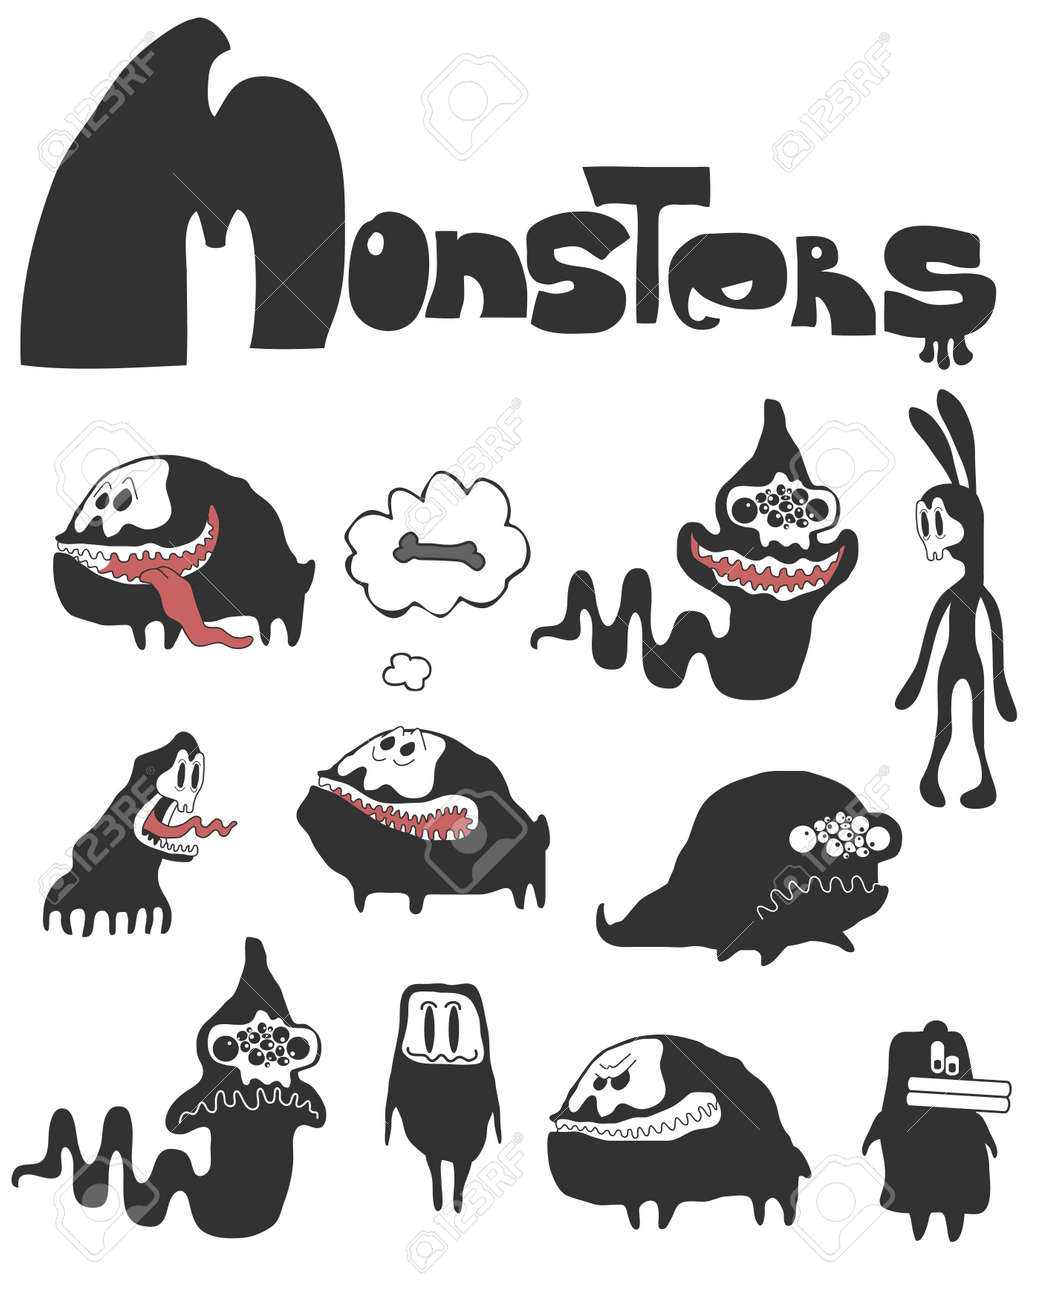 The set of monsters. Stock Vector - 20630554